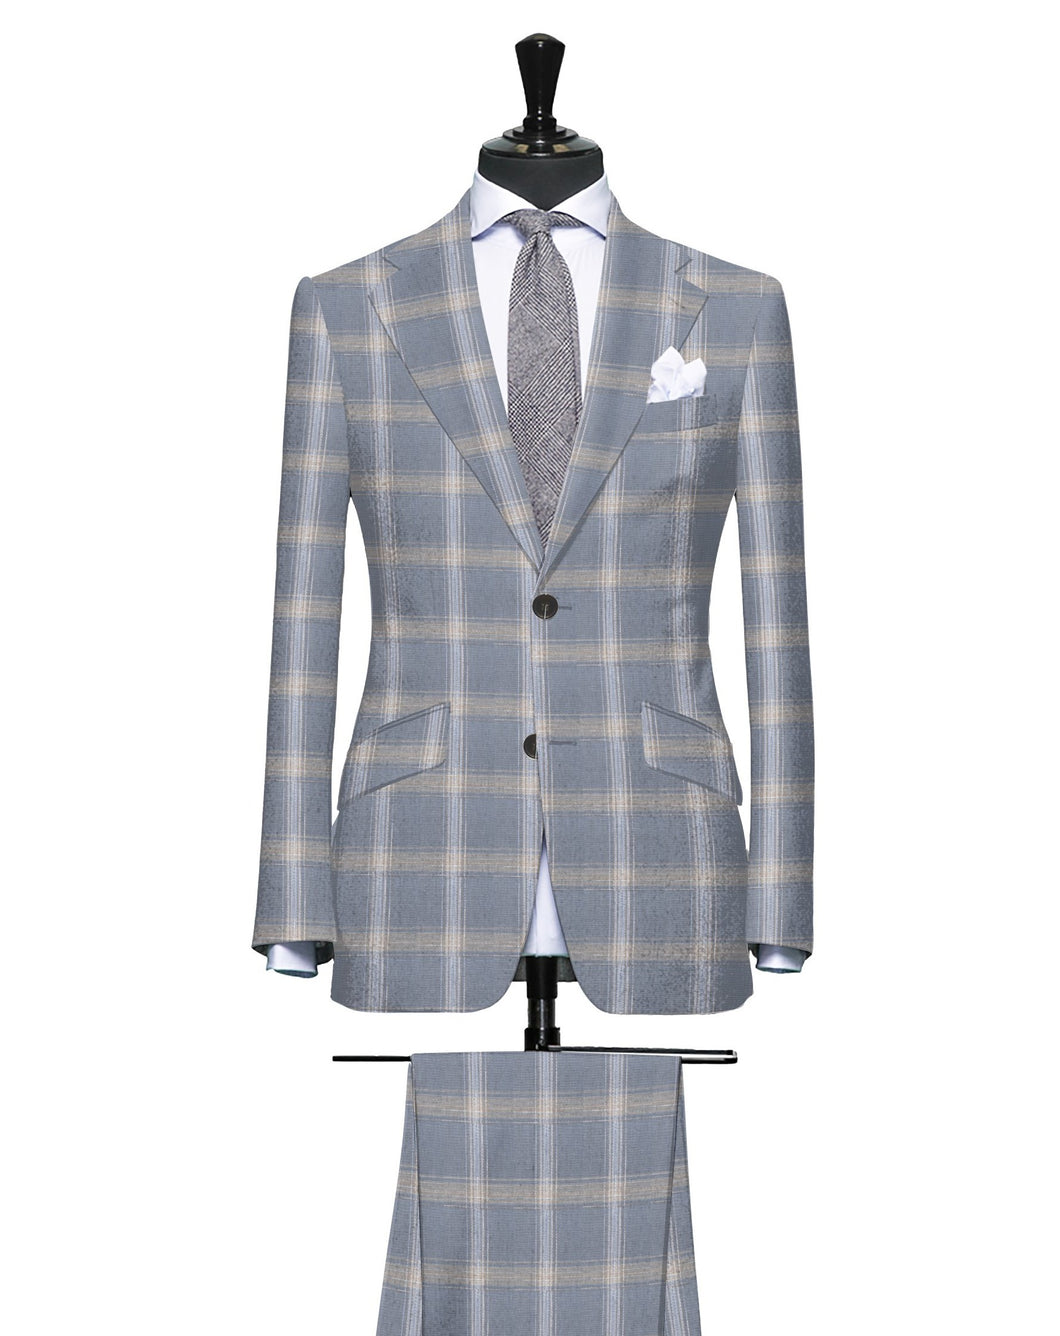 Grey with Tan and Light Blue Large Plaid Pattern, Super 140, Wool